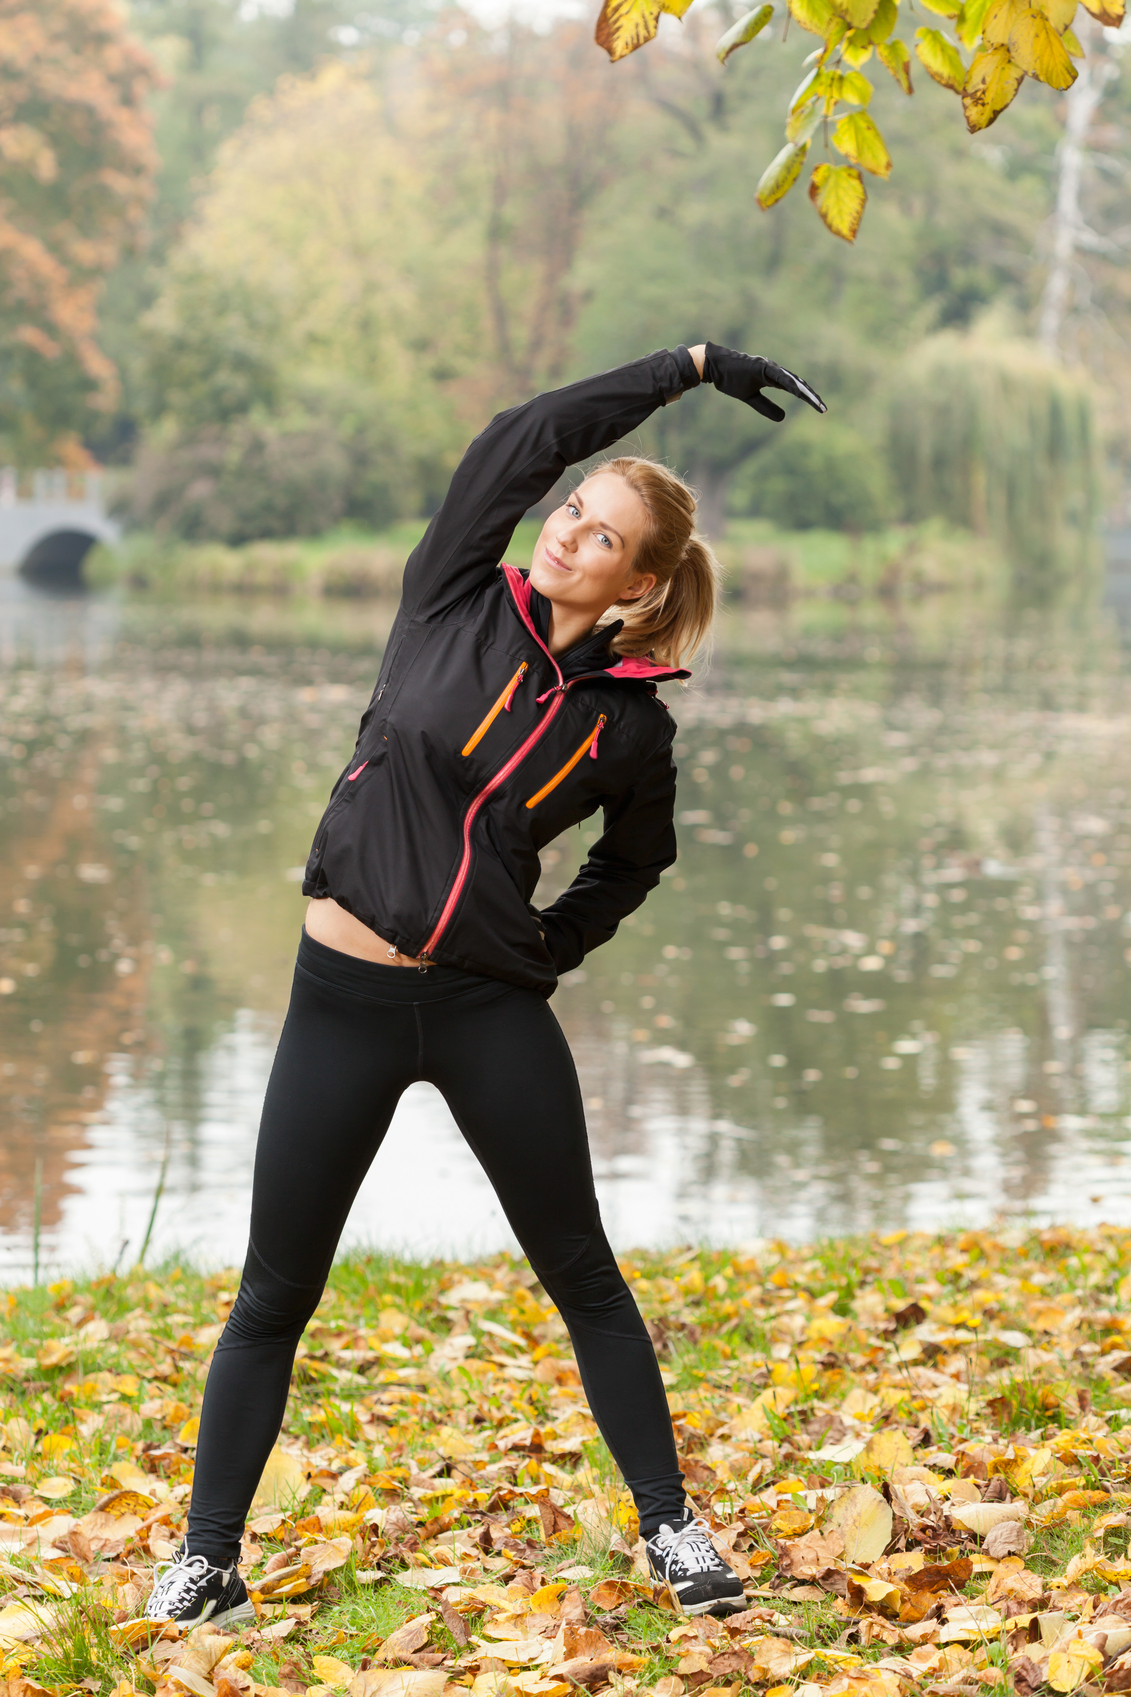 Break for stretching in the park in autumn